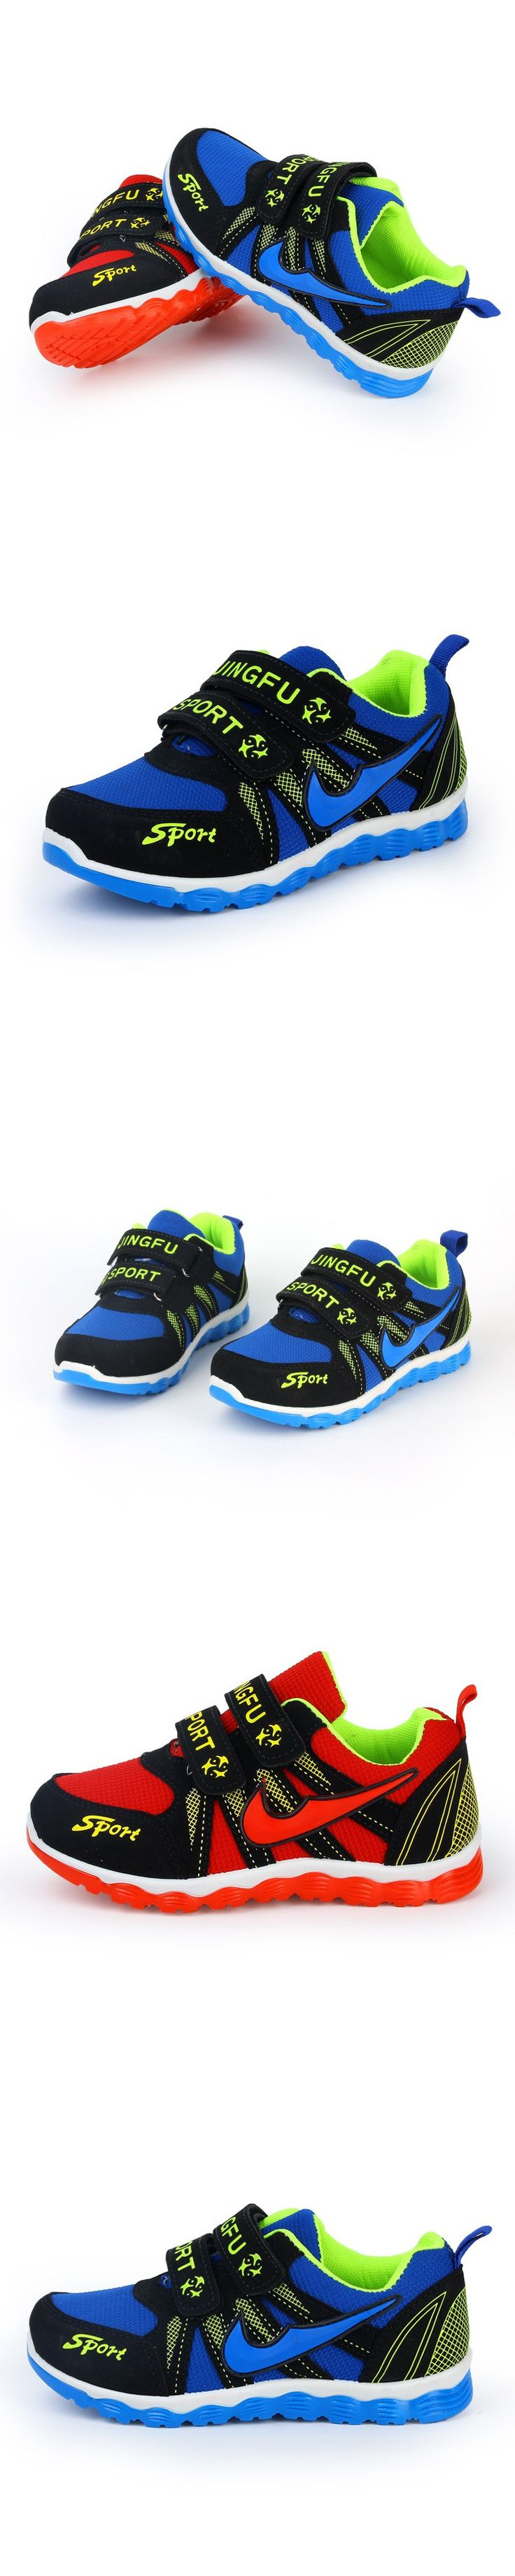 2016 New Spring Summer Brand Kids Shoes Sneakers Boys Shoes For Girl Children Sport Tenis Infantil Tenis Masculino Esportivo